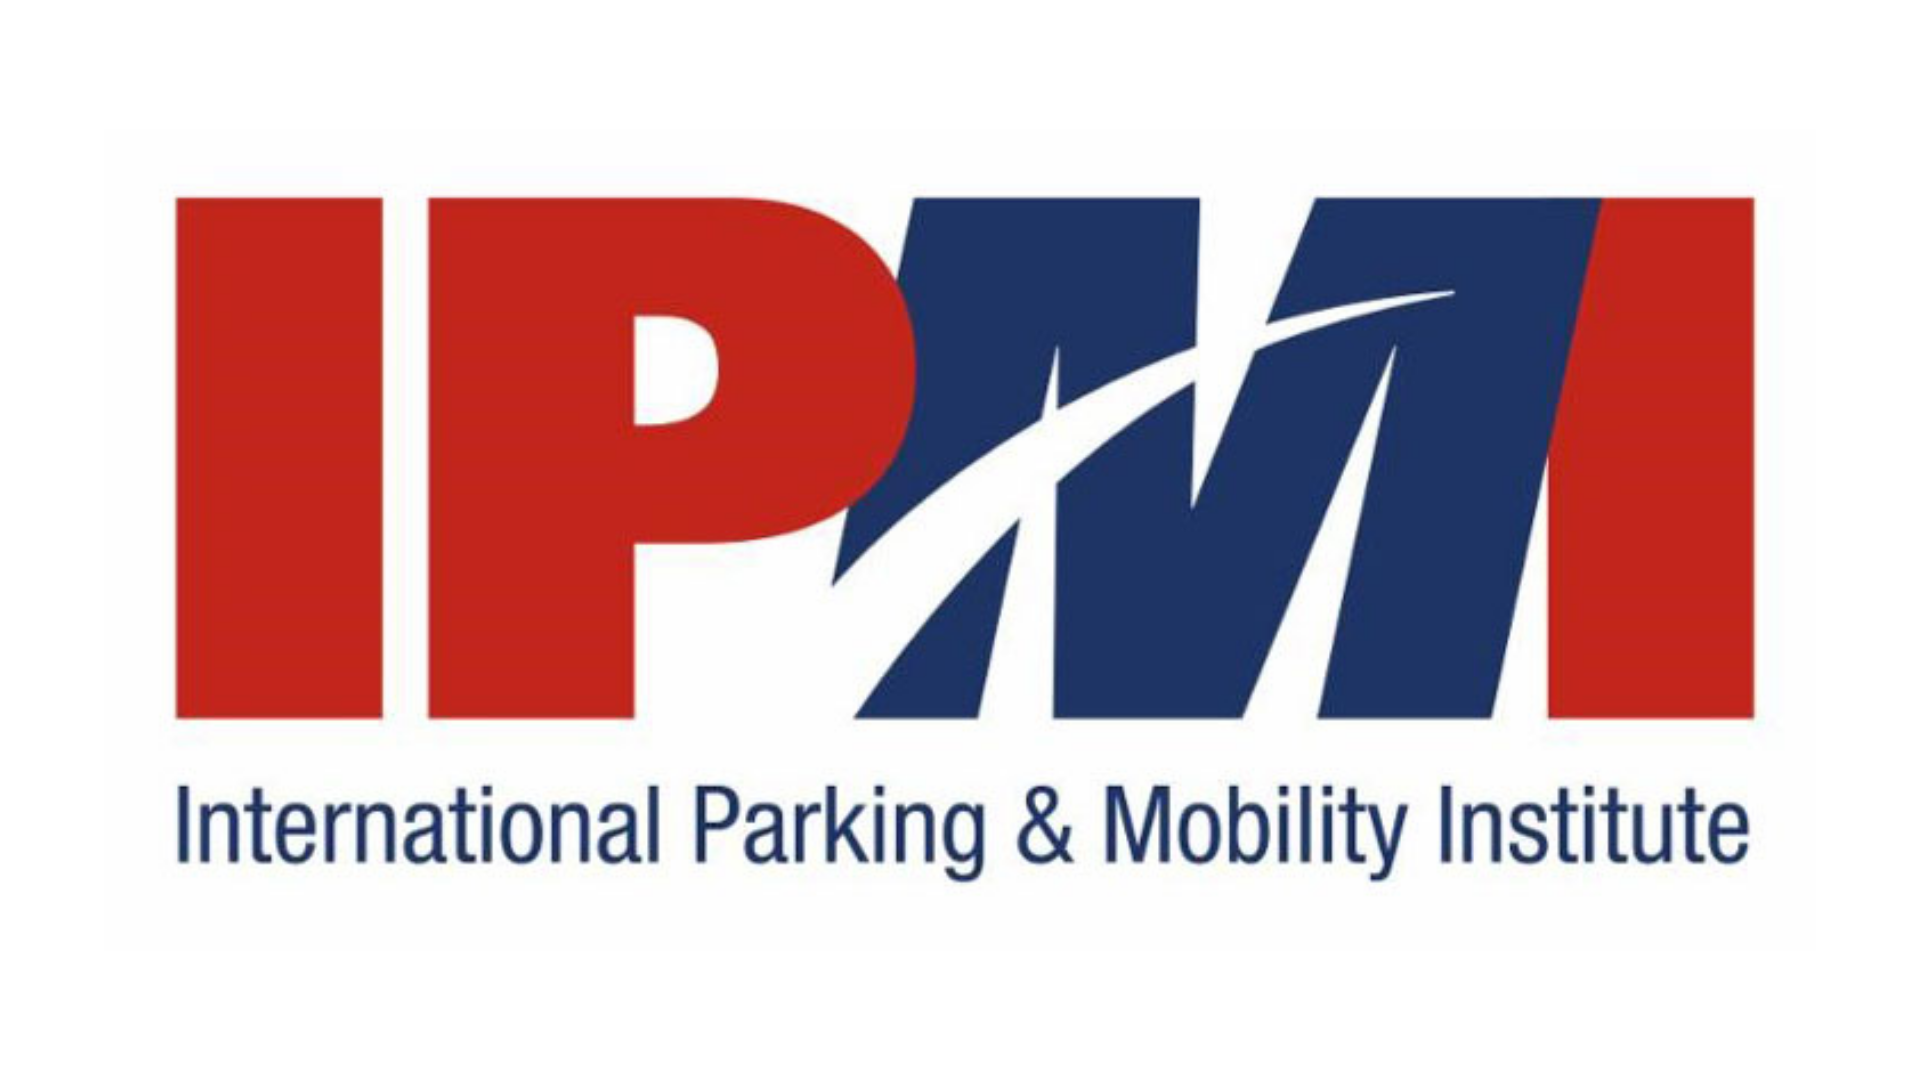 Spot Parking featured in the IPMI Magazine